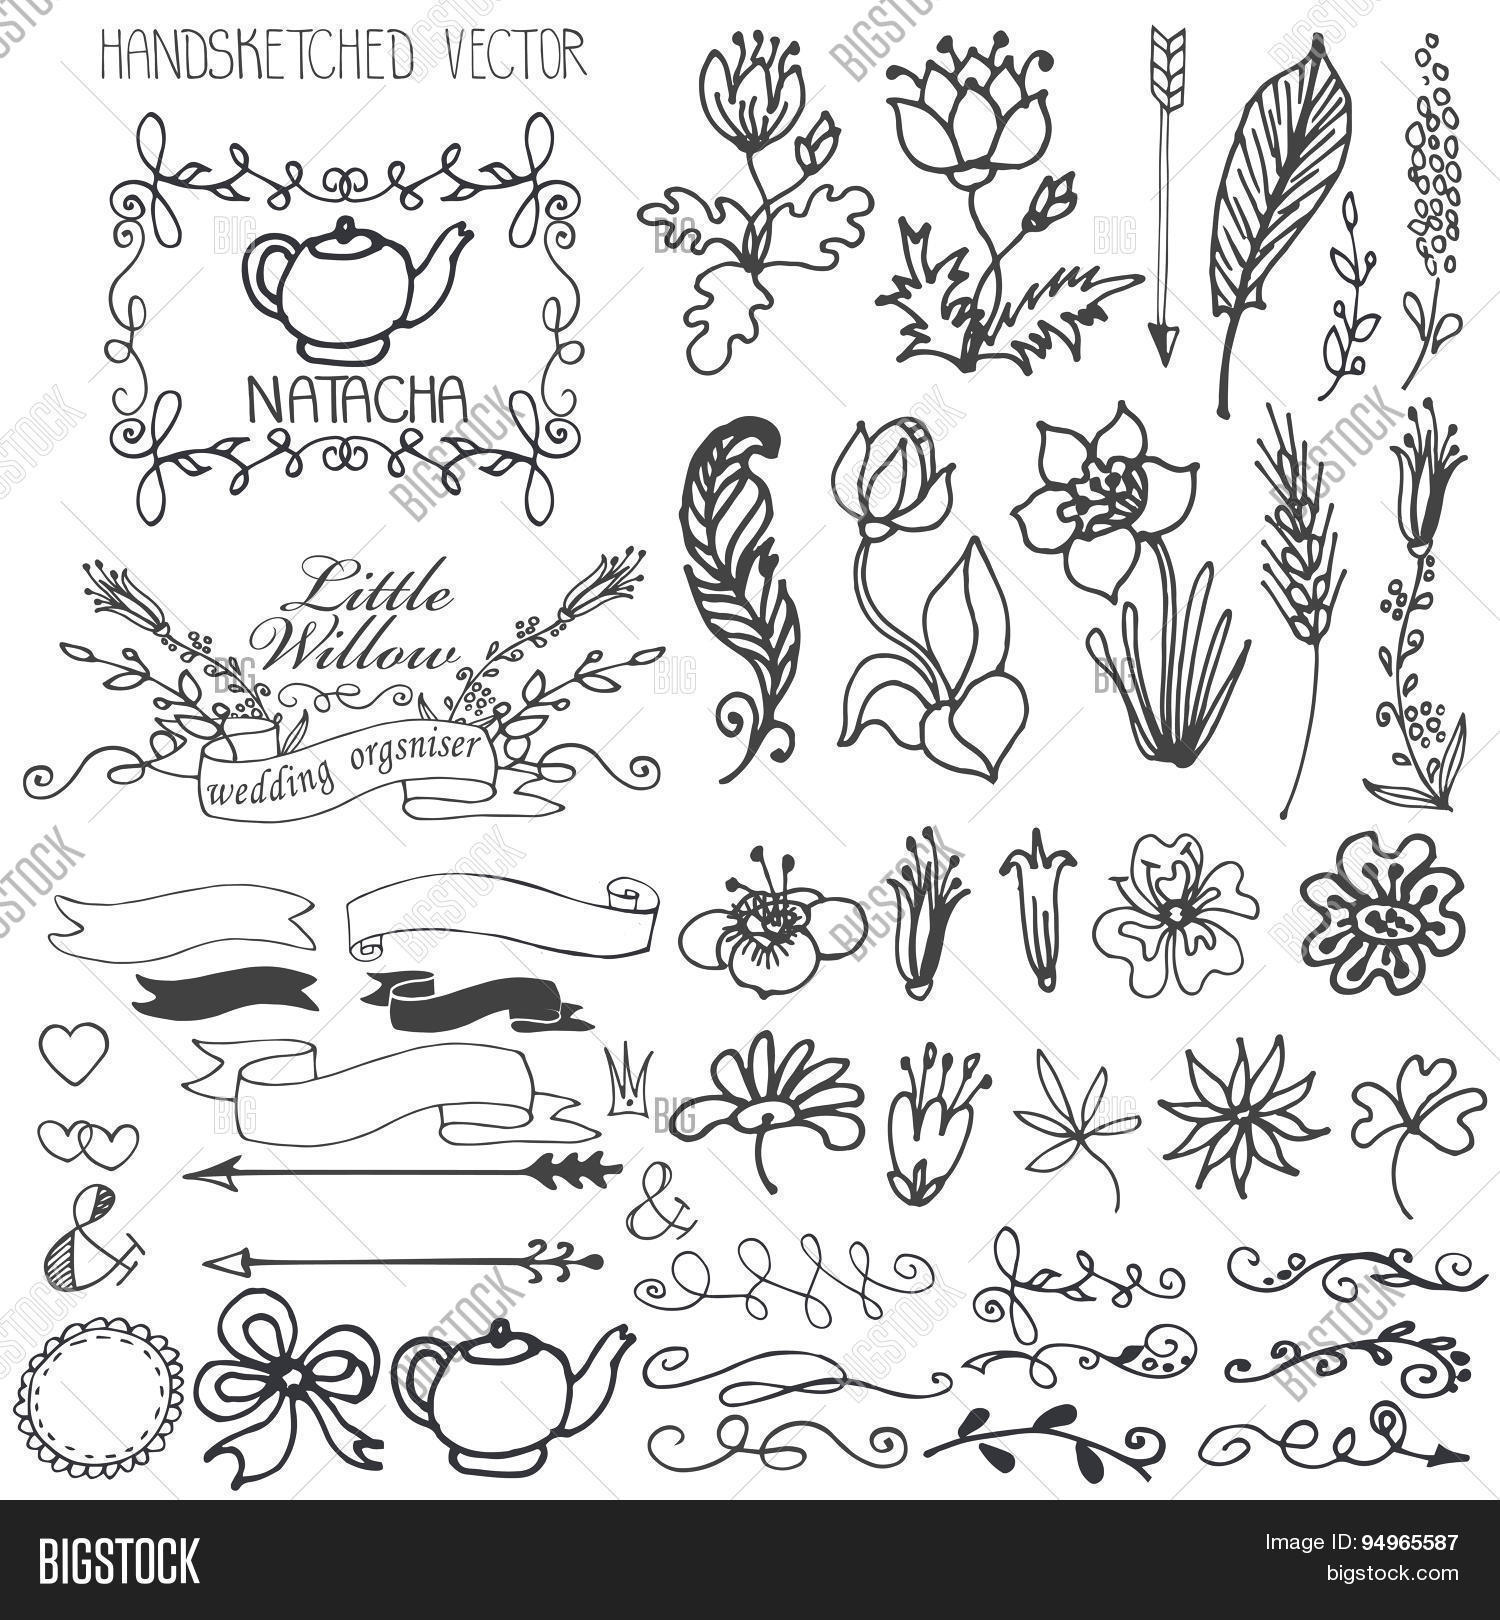 Doodles Flowers Brunshes Swirl Border And Arrows Ribbons With Decor Elements Set For Hand Scetced Logo Design Templates Invitations Logtype Vector